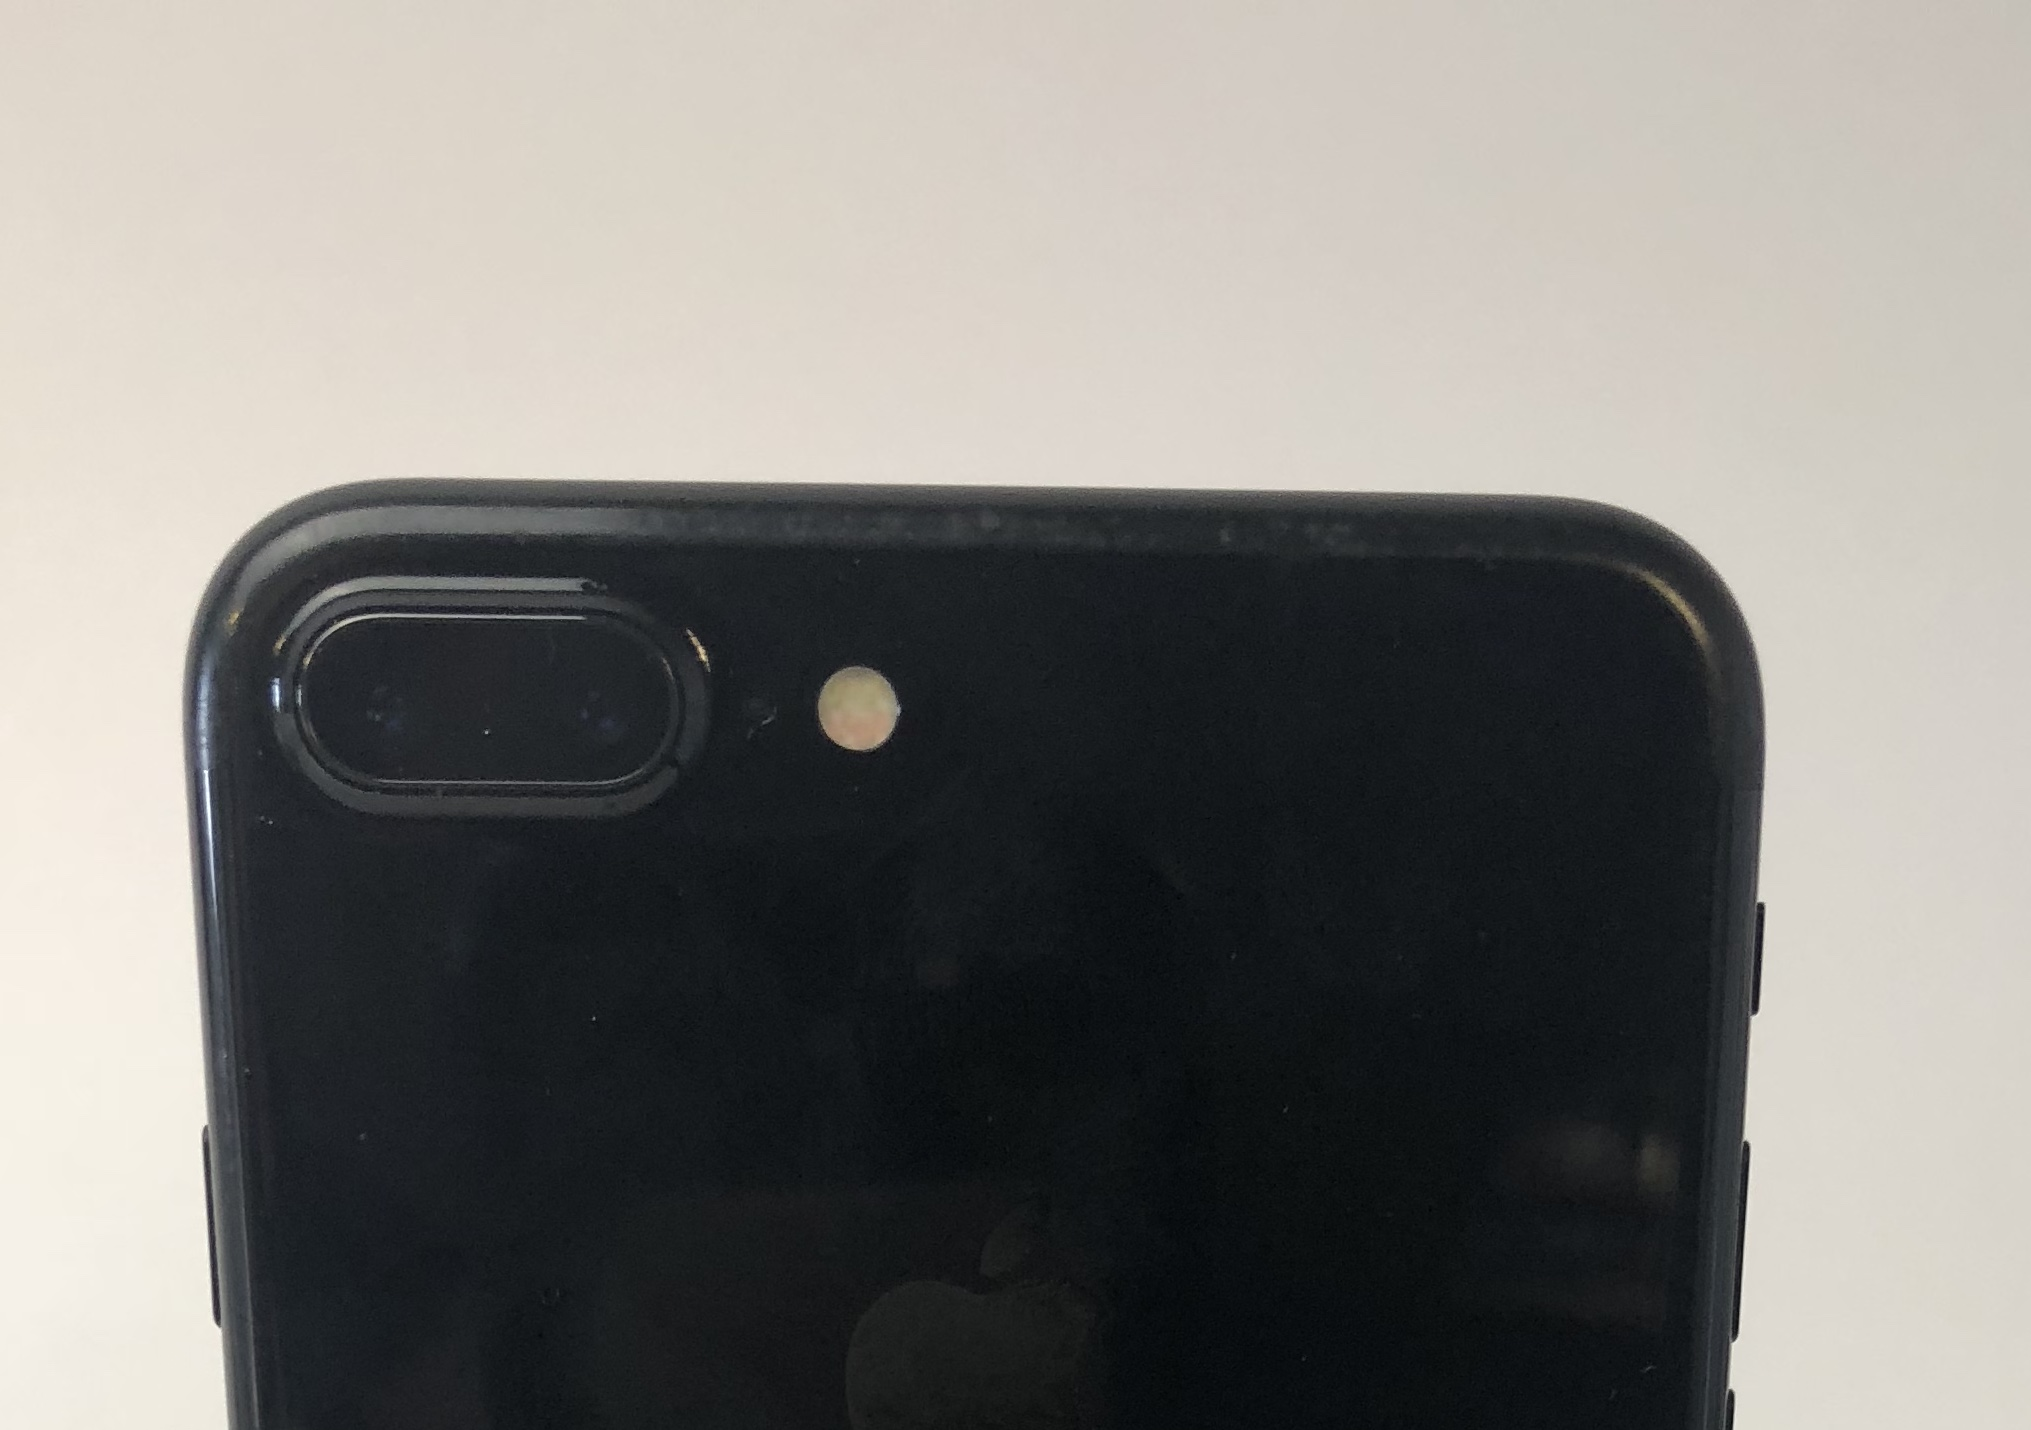 iPhone 7 Plus 256GB, 256 GB, Black, Product age: 25 months, image 4